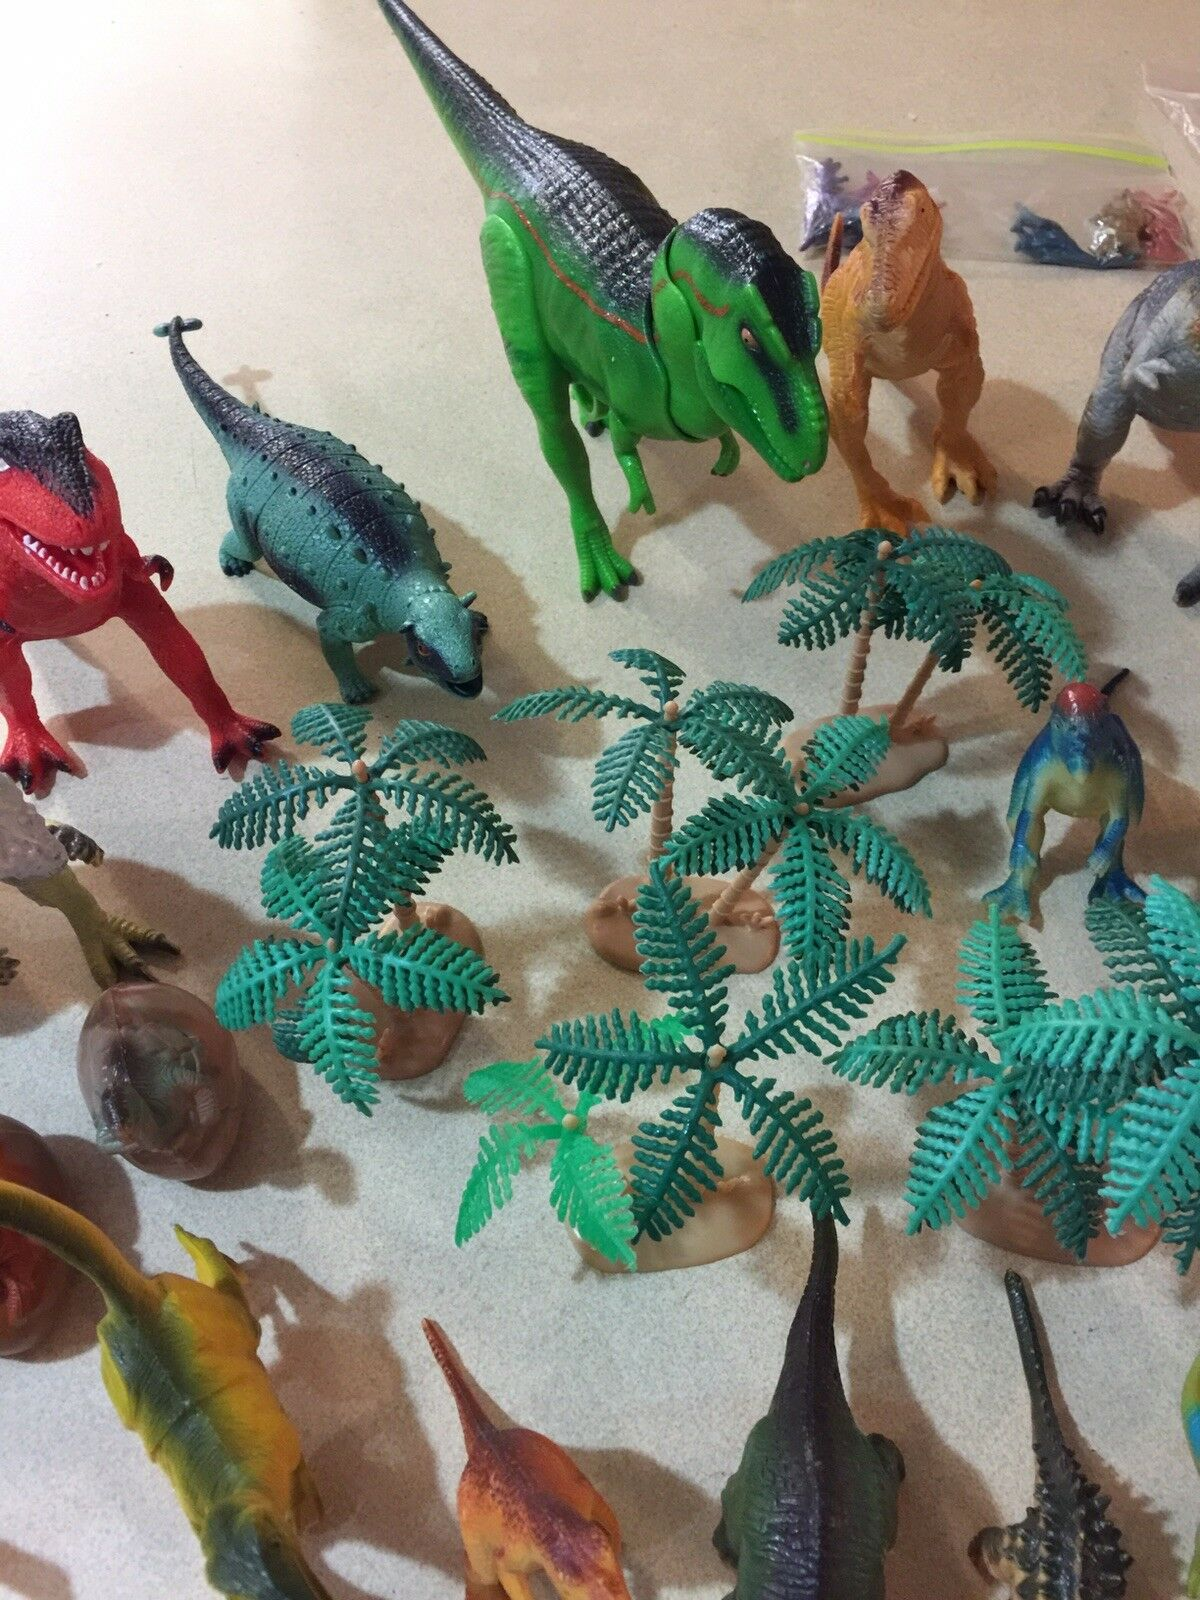 HUGE USED USED USED LOT OF 60+ TOY DINOSAURS ASSORTED SIZES COLORS BREEDS ETC FREE SHIP 9f471e